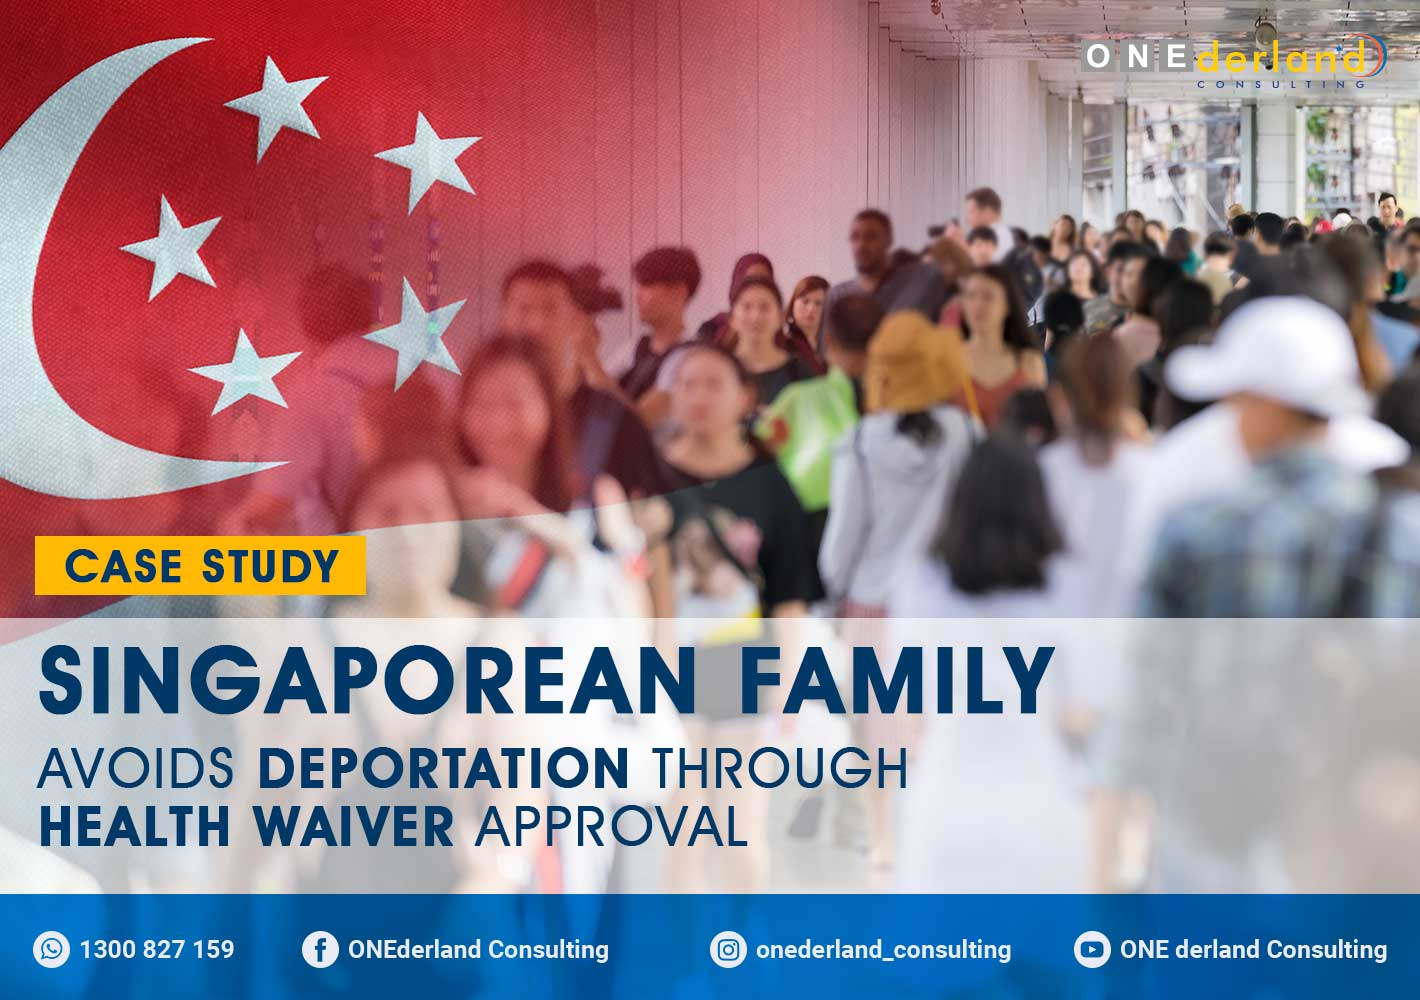 Singaporean Family Avoids Deportation Through Health Waiver Approval